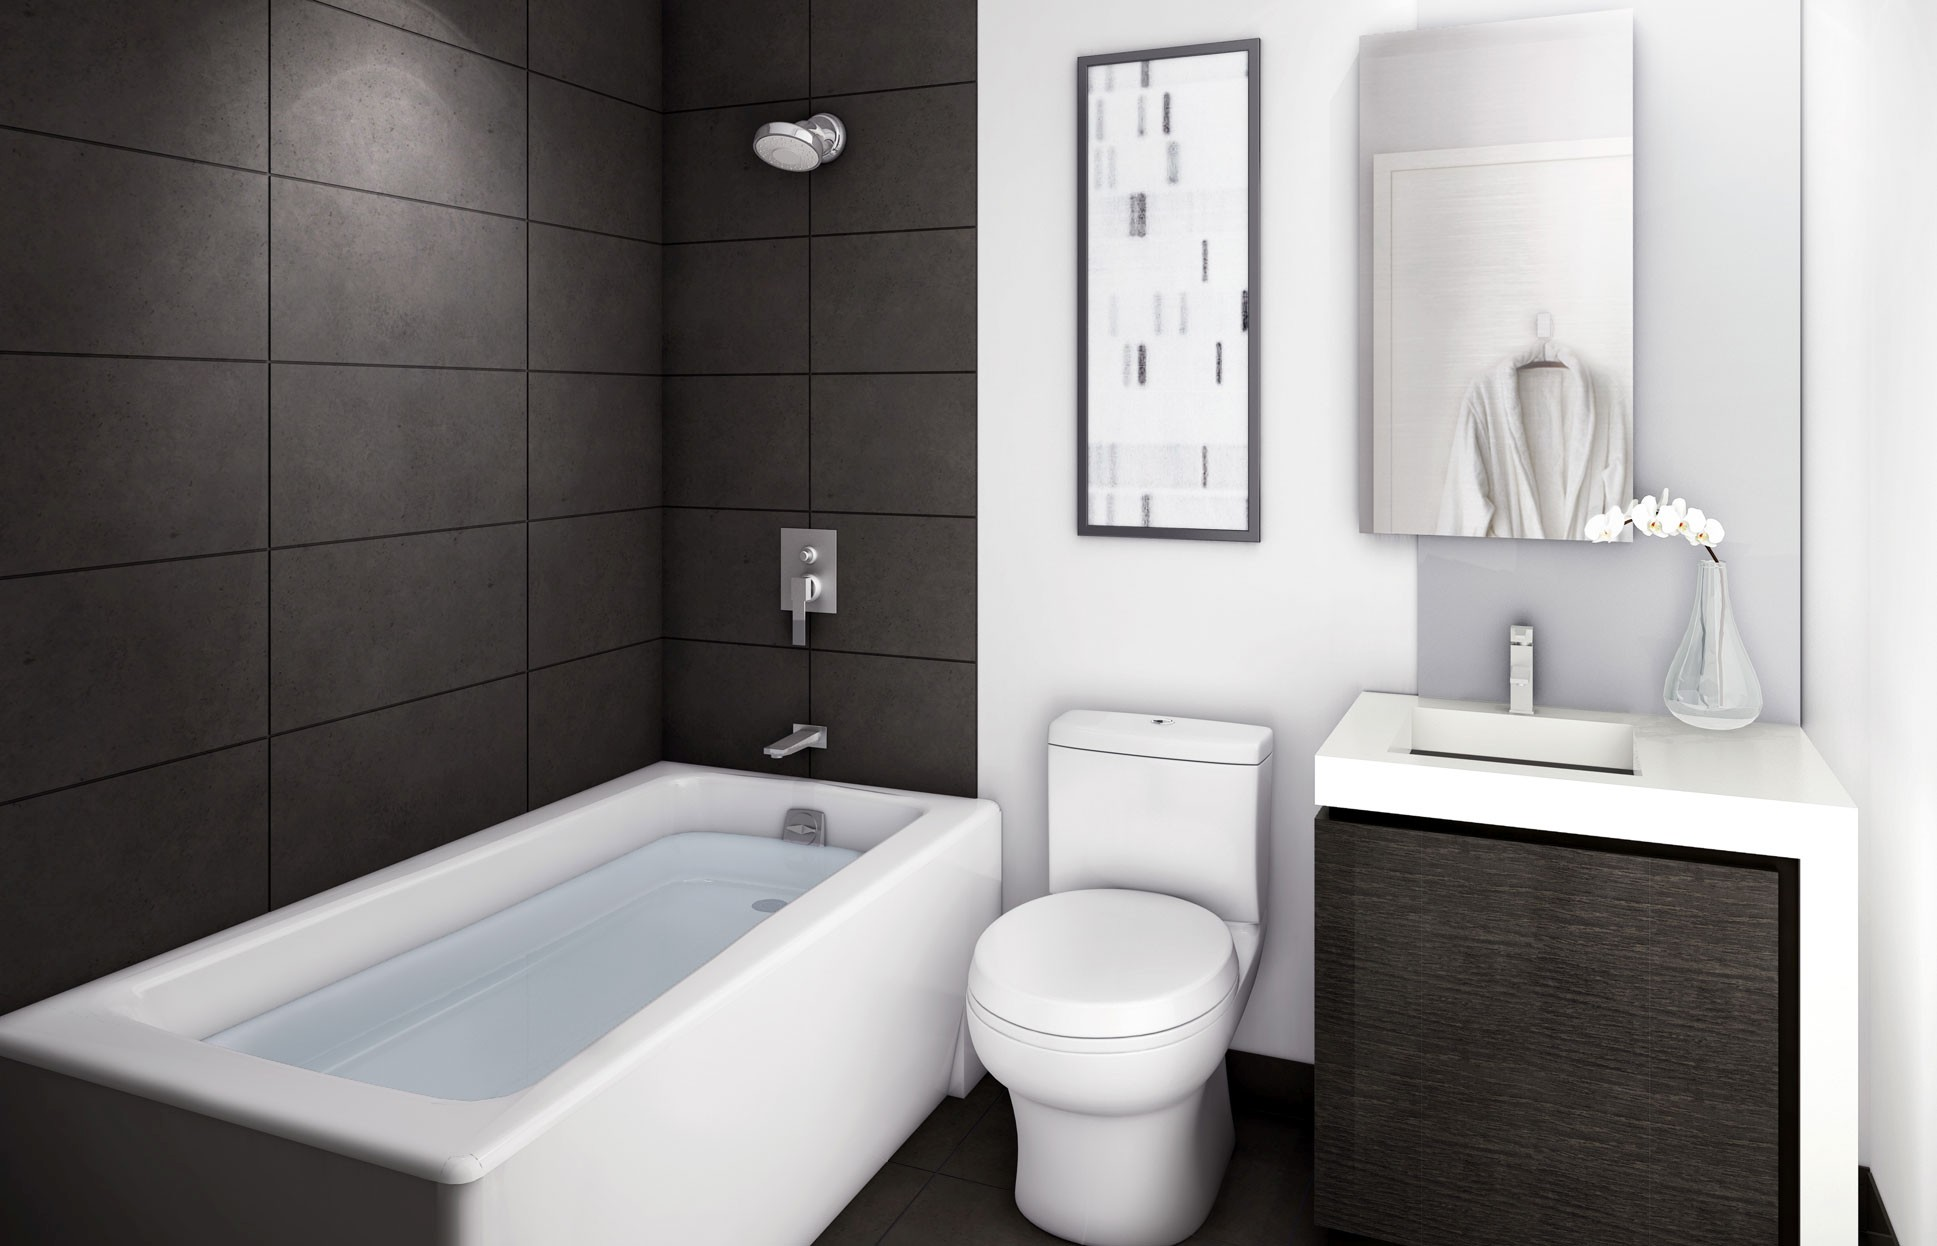 Pictures Of Bathroom Designs Terrific Popular Of Simple Small Bathroom Designs On House Decorating Ideas Wallpaper